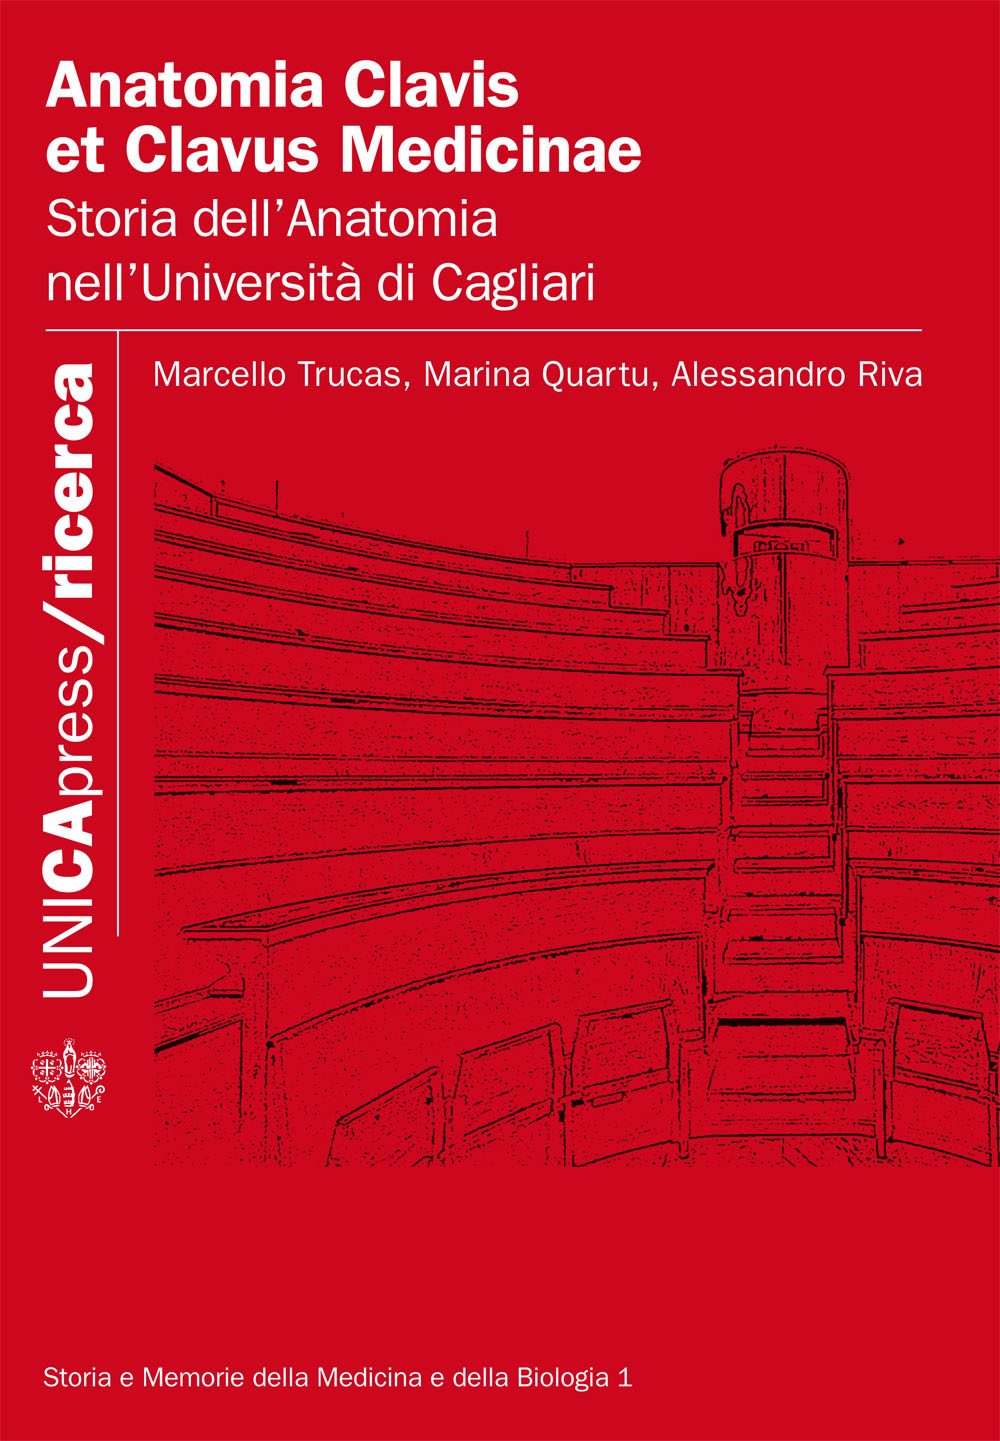 Anatomia Clavis et Clavus Medicinae - Bononia University Press